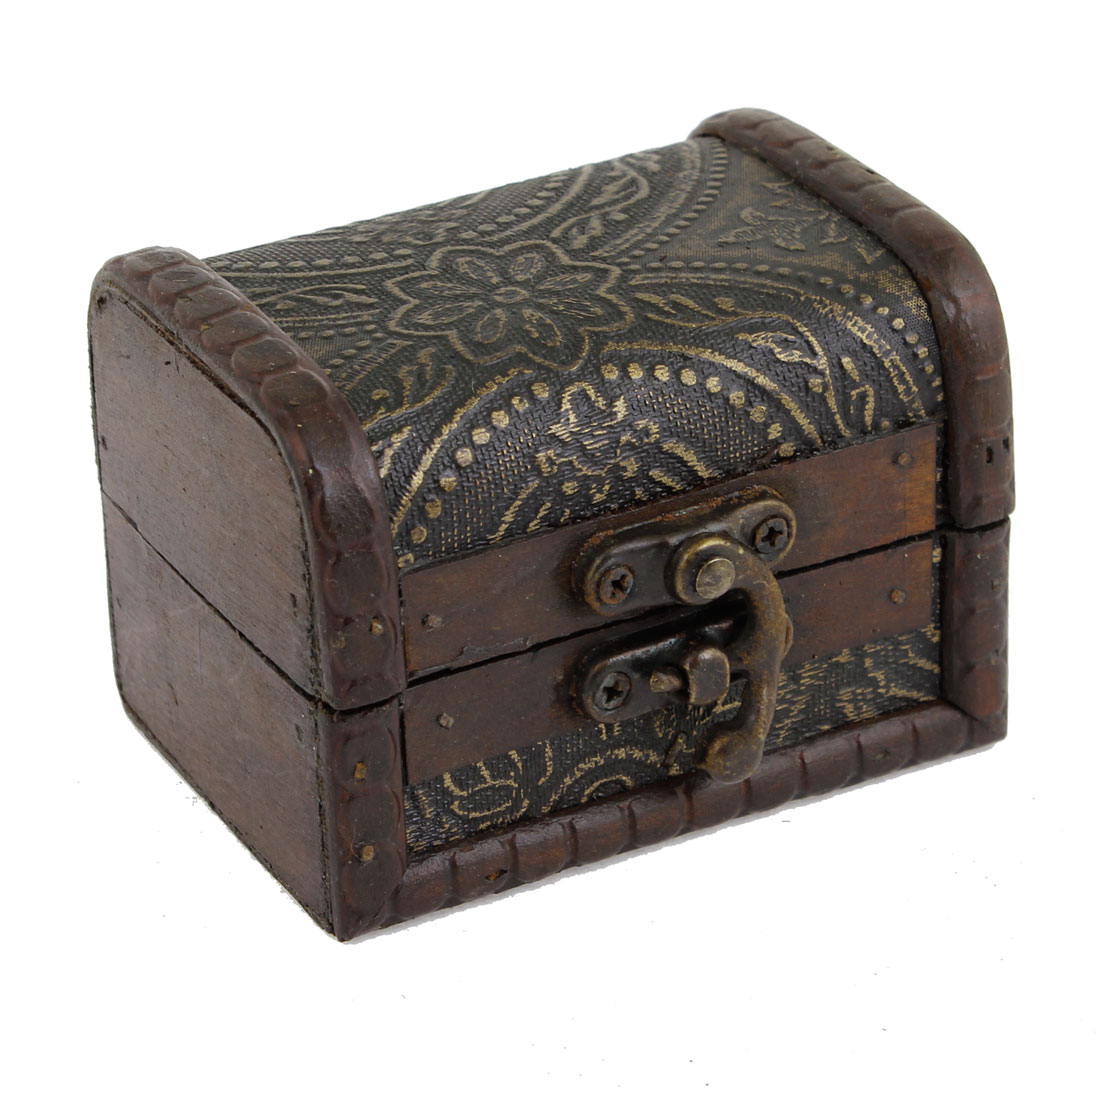 Flower Pattern Rectangular Wooden Jewelry Holder Case Box